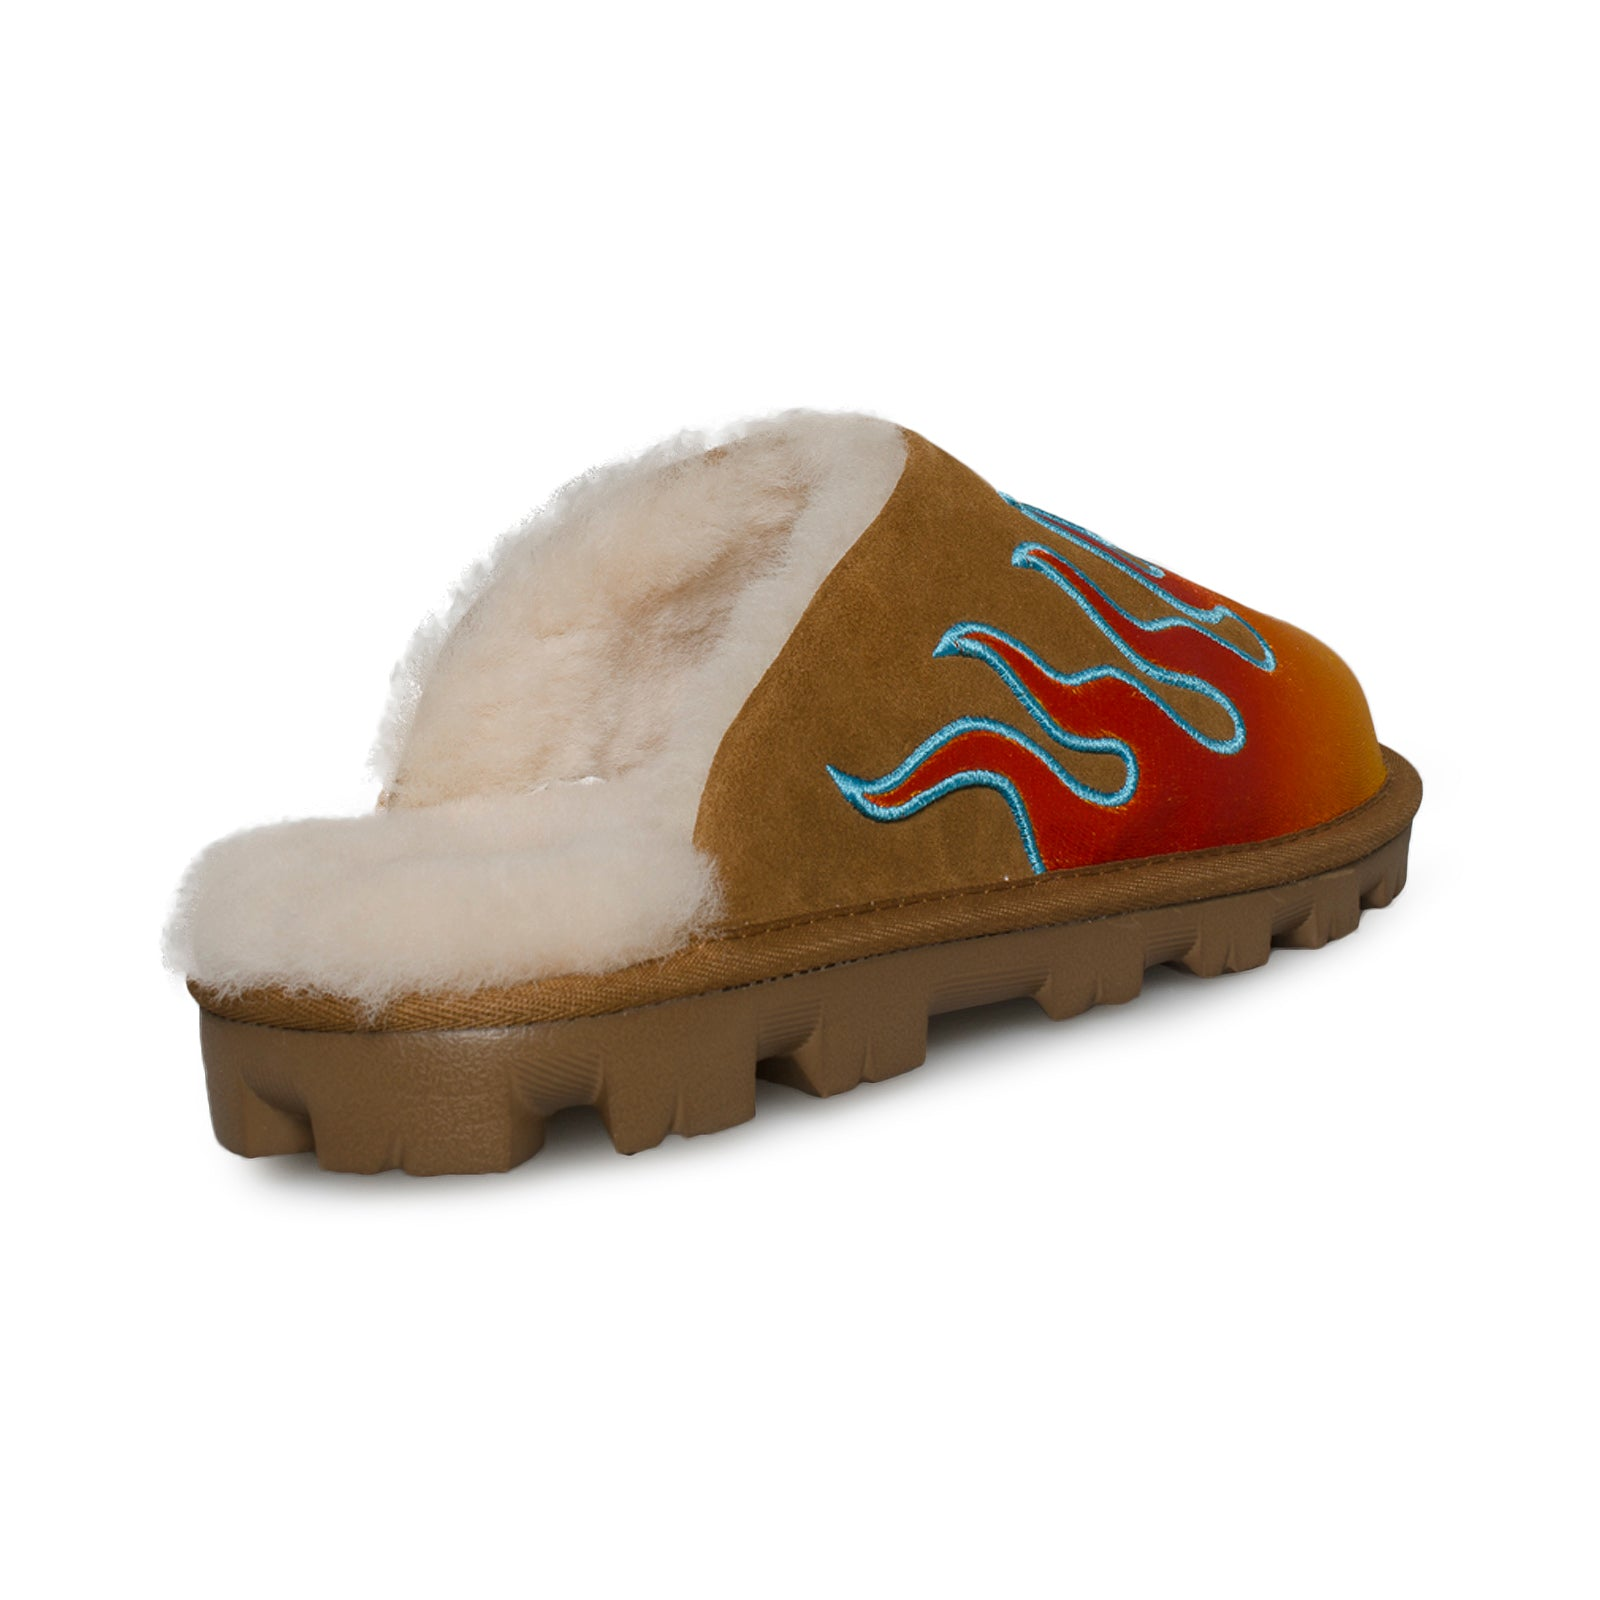 0a4fa2d5f5b UGG Coquette Flames Jeremy Scott Chestnut Slippers